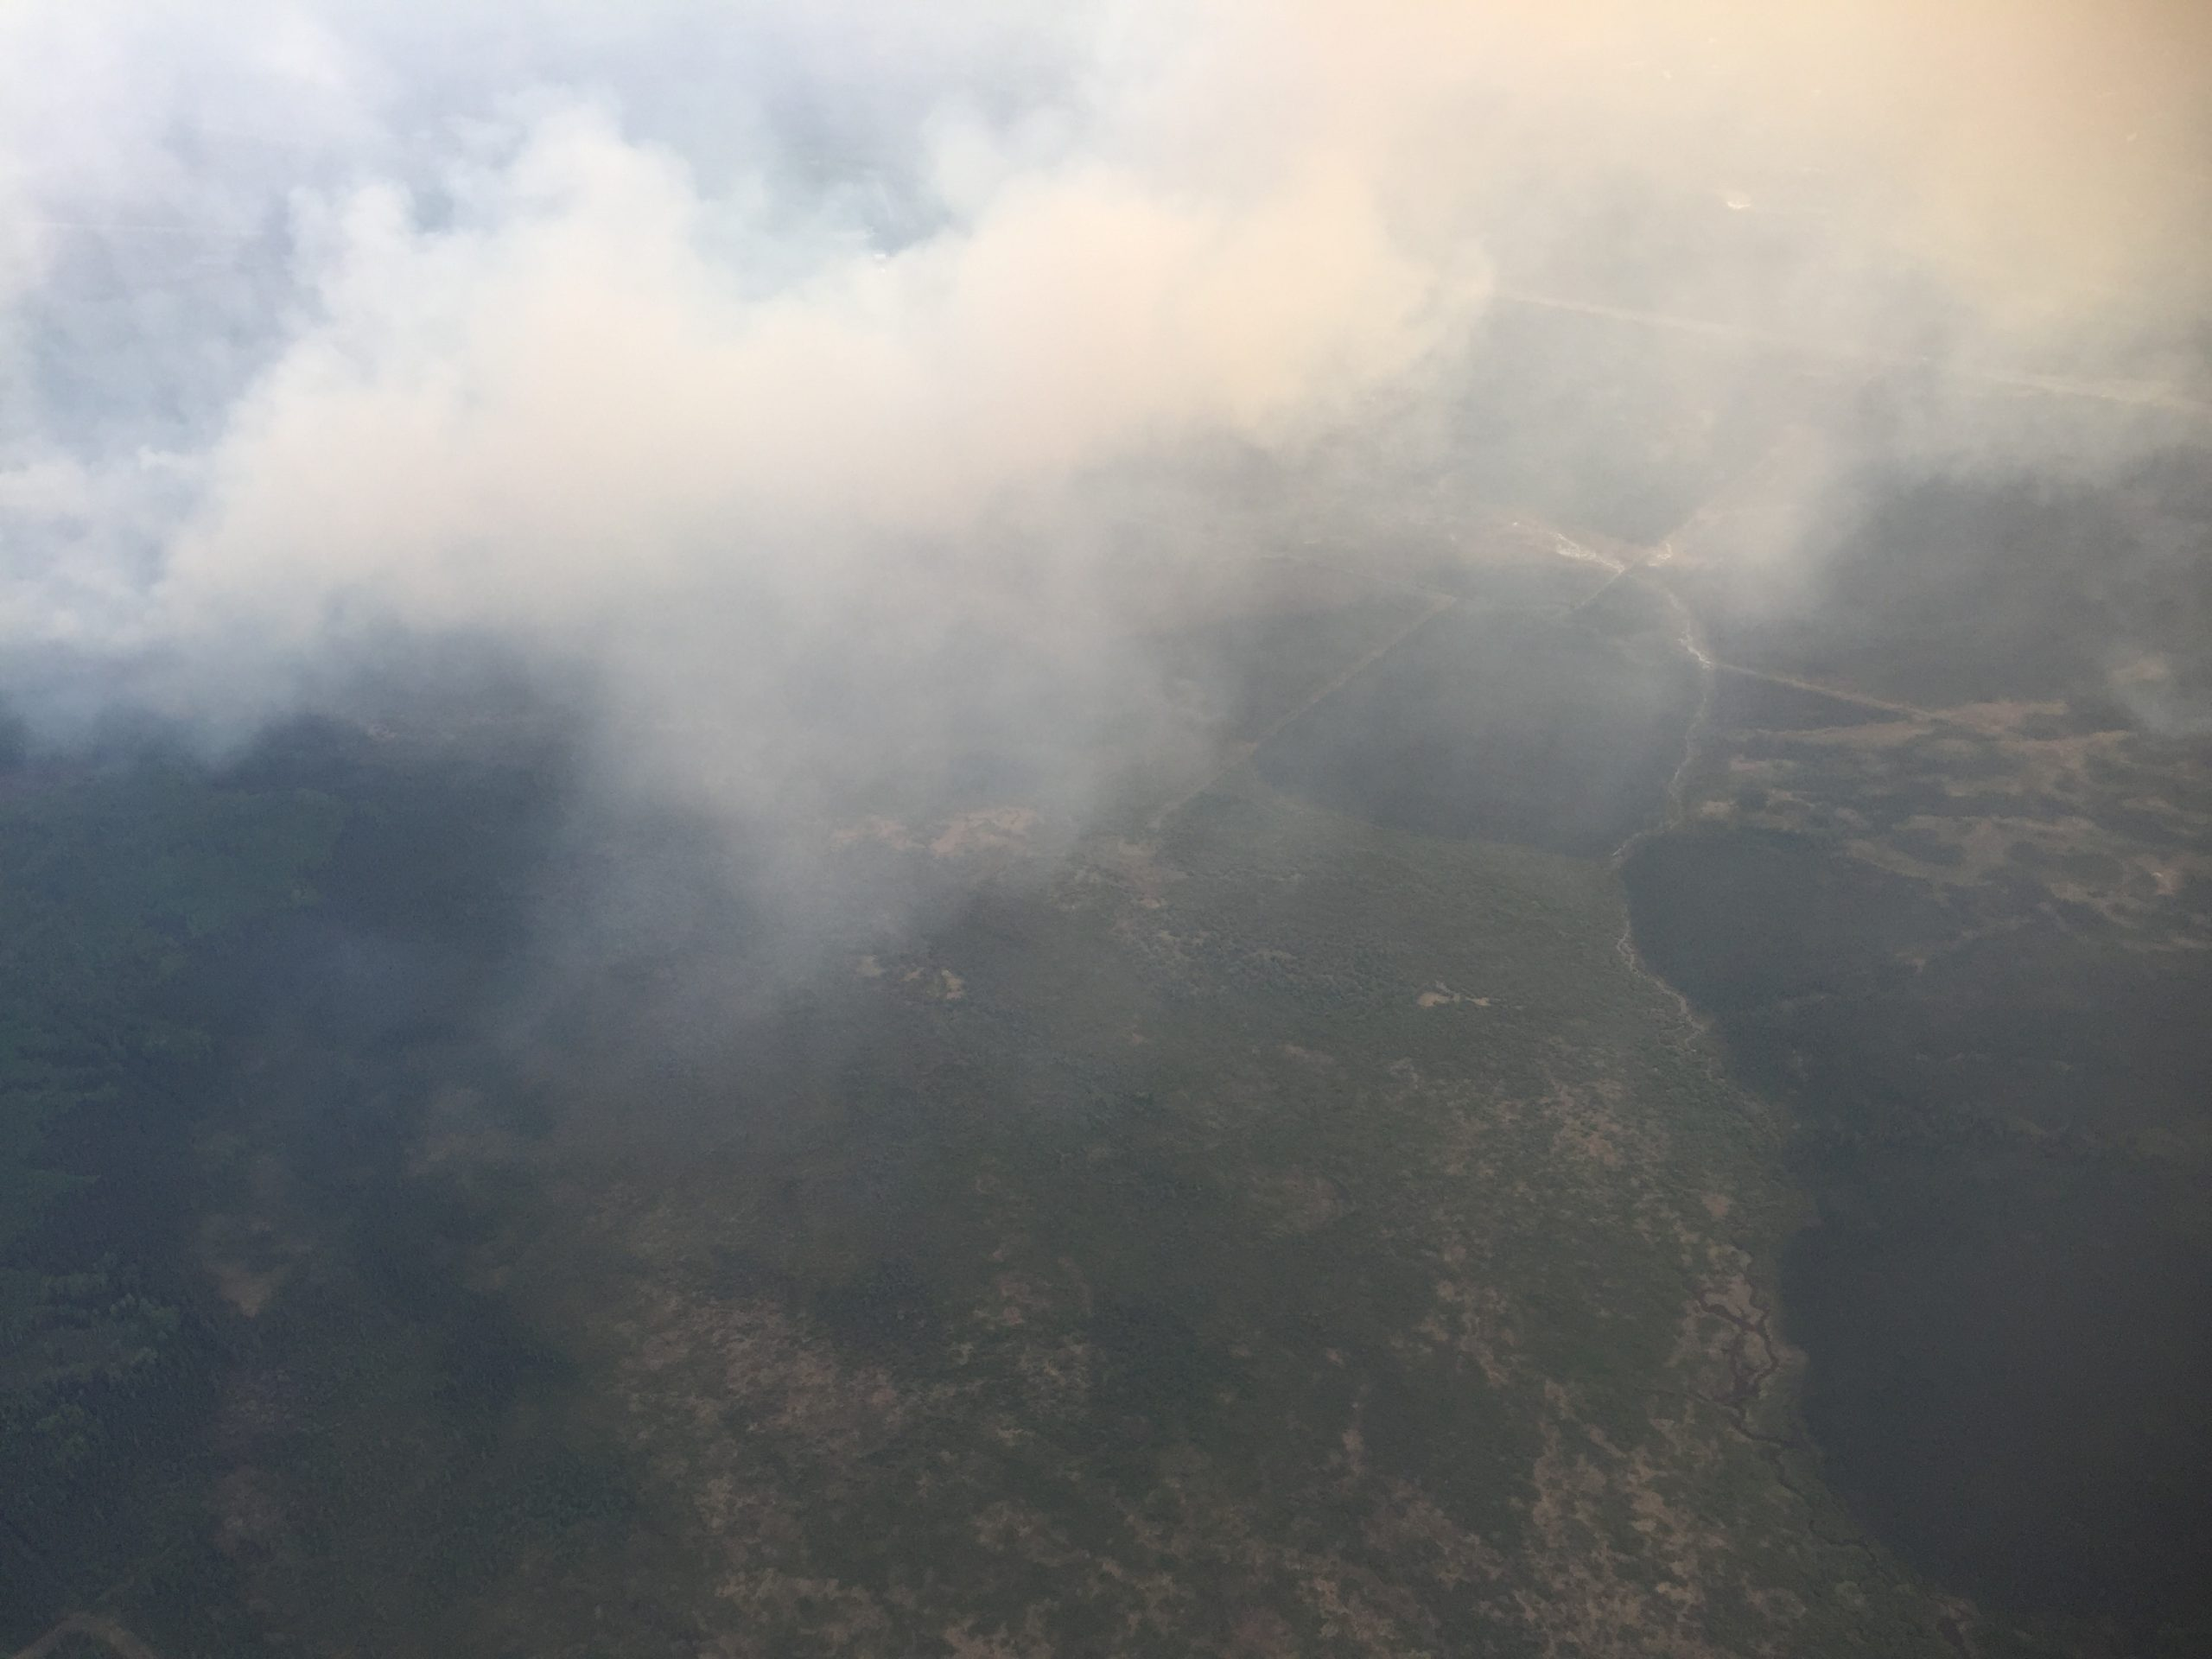 Janvier Wildfire 'Being Held' - No Longer An Imminent Threat To Community